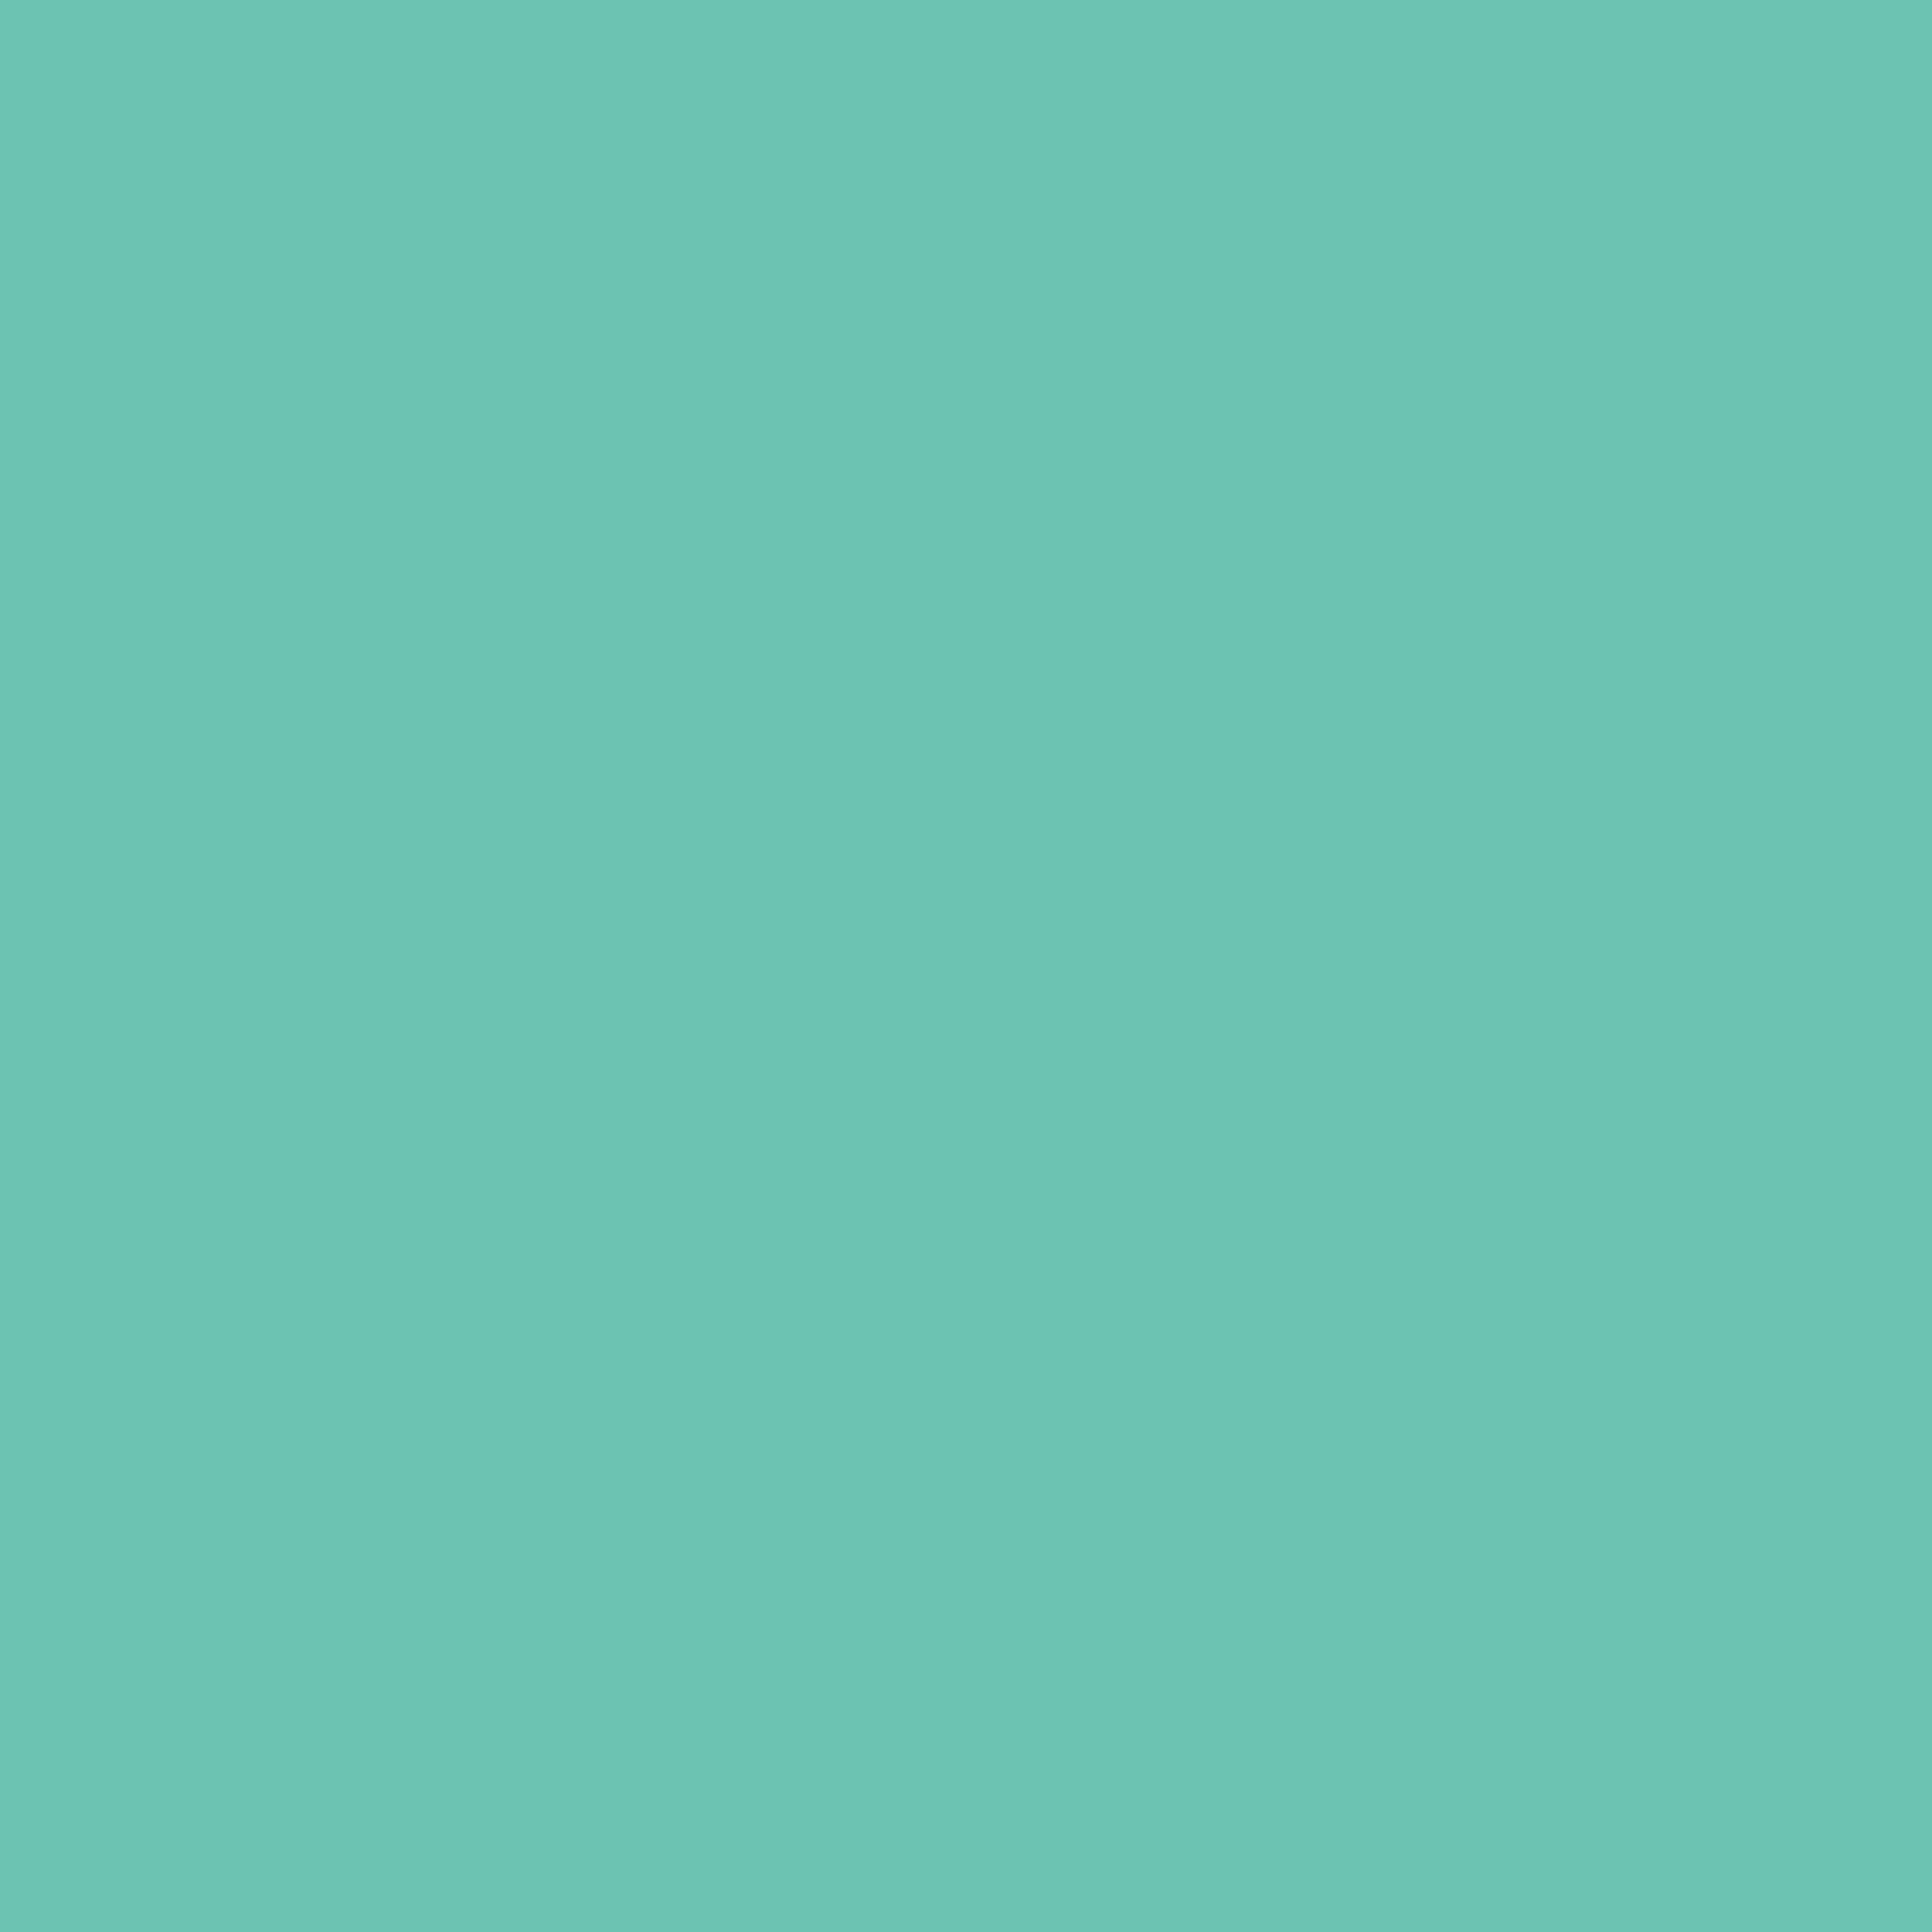 Cockatoo PANTONE 14 5420 This looks like the Tiffany color blue